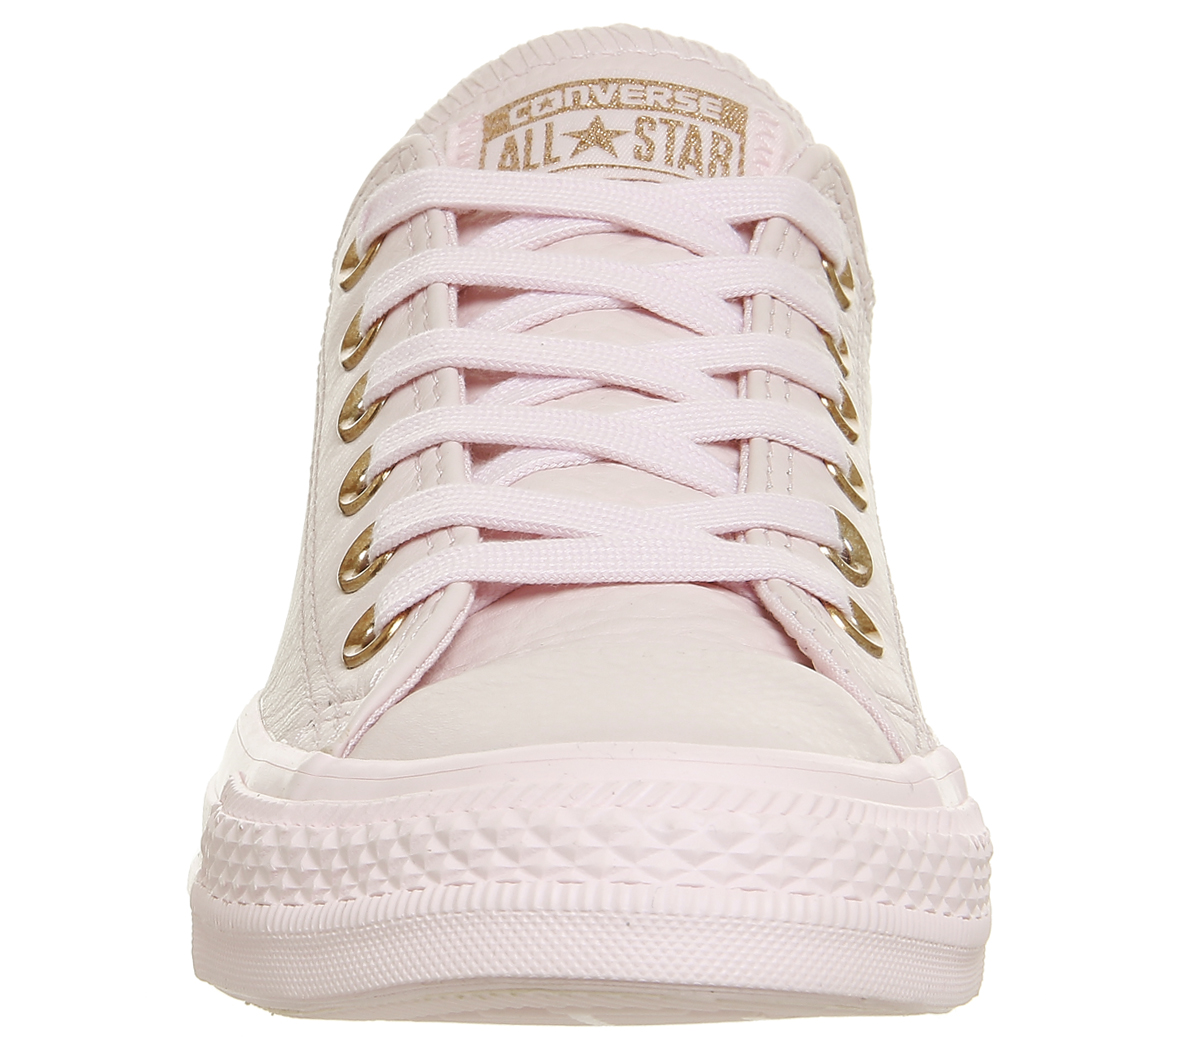 14869e36b957 Sentinel Womens Converse All Star Low Leather ARTIC PINK ROSE GOLD Trainers  Shoes